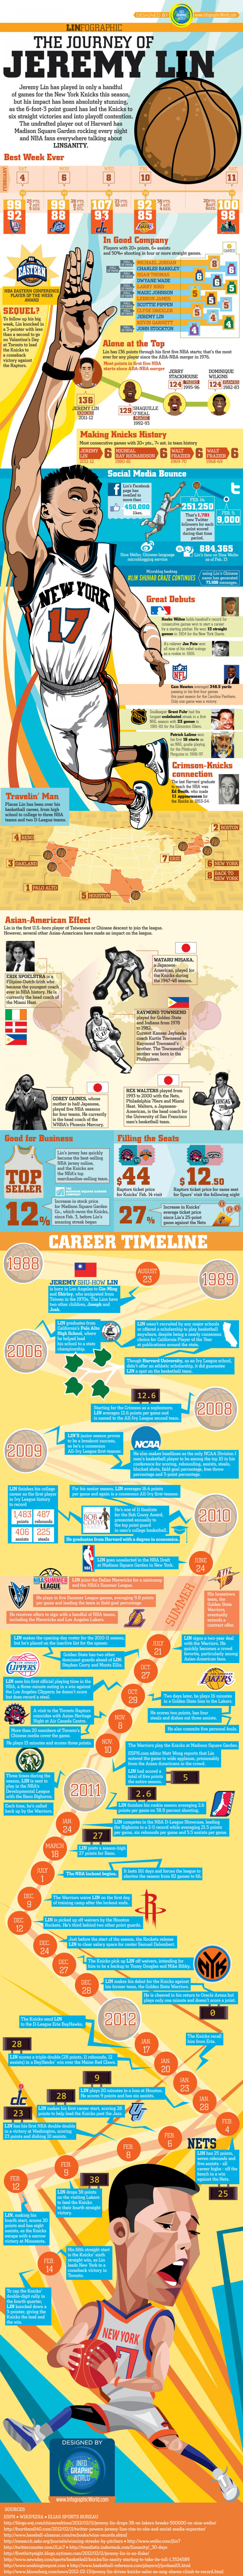 Linfographic: The Journey Of Jeremy Lin Infographic